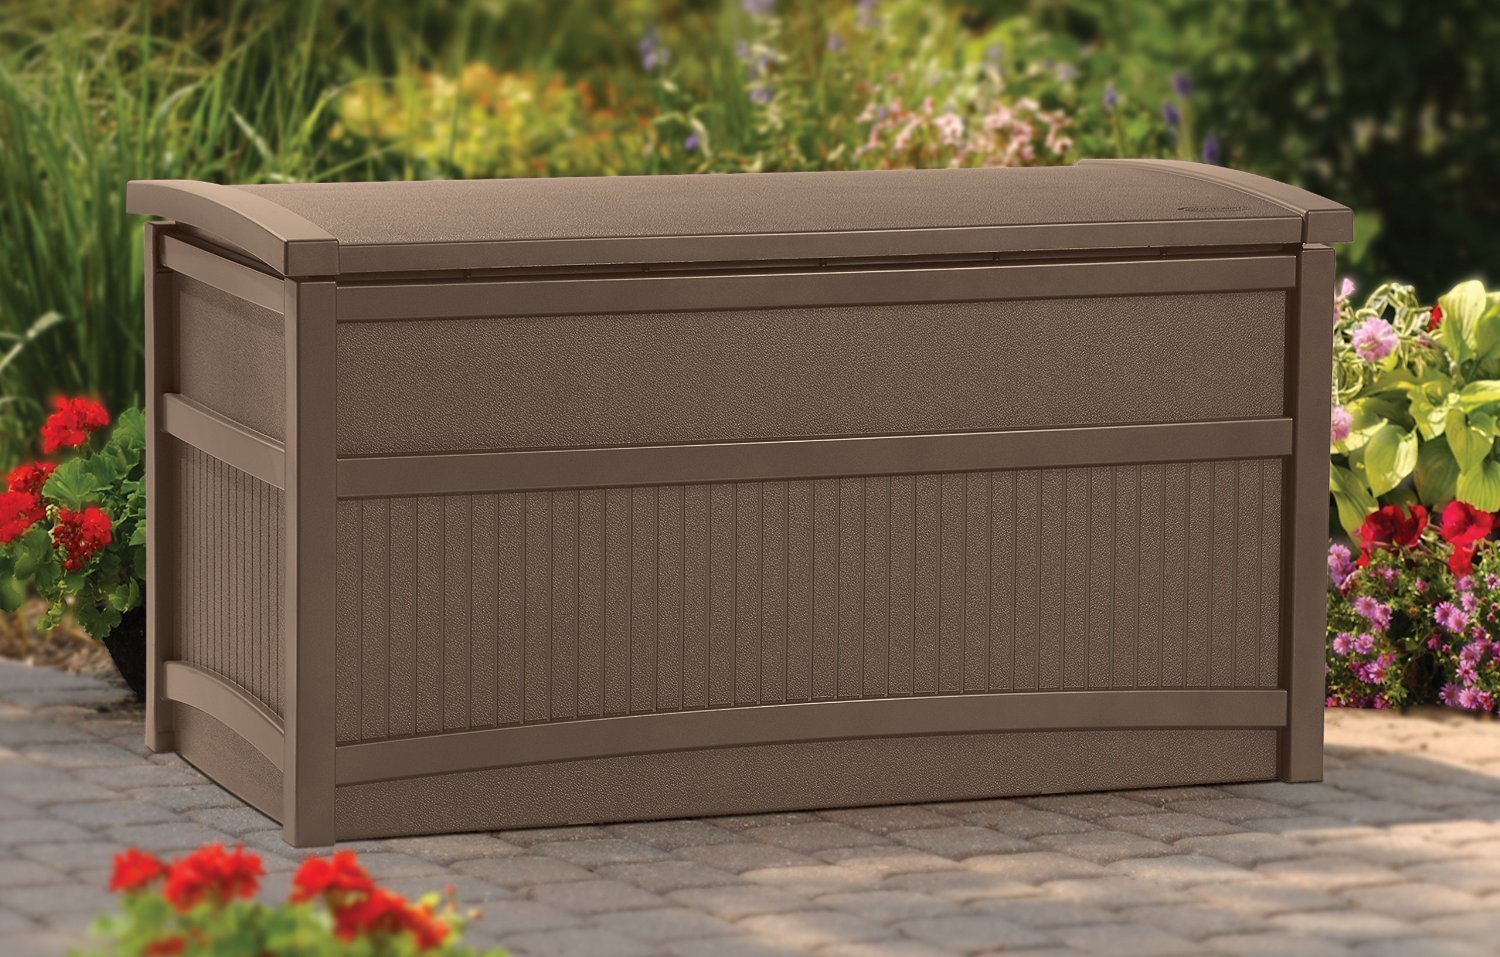 Top Selling Best Indoor Outdoor Soft Mocha Brown 50 Gallon Capacity Weather Resistant Storage Box Bin Organizer Bench- Slatted Finish Ventilation Keeps Gear Free of Mold Mildew Perfect For Deck Patio